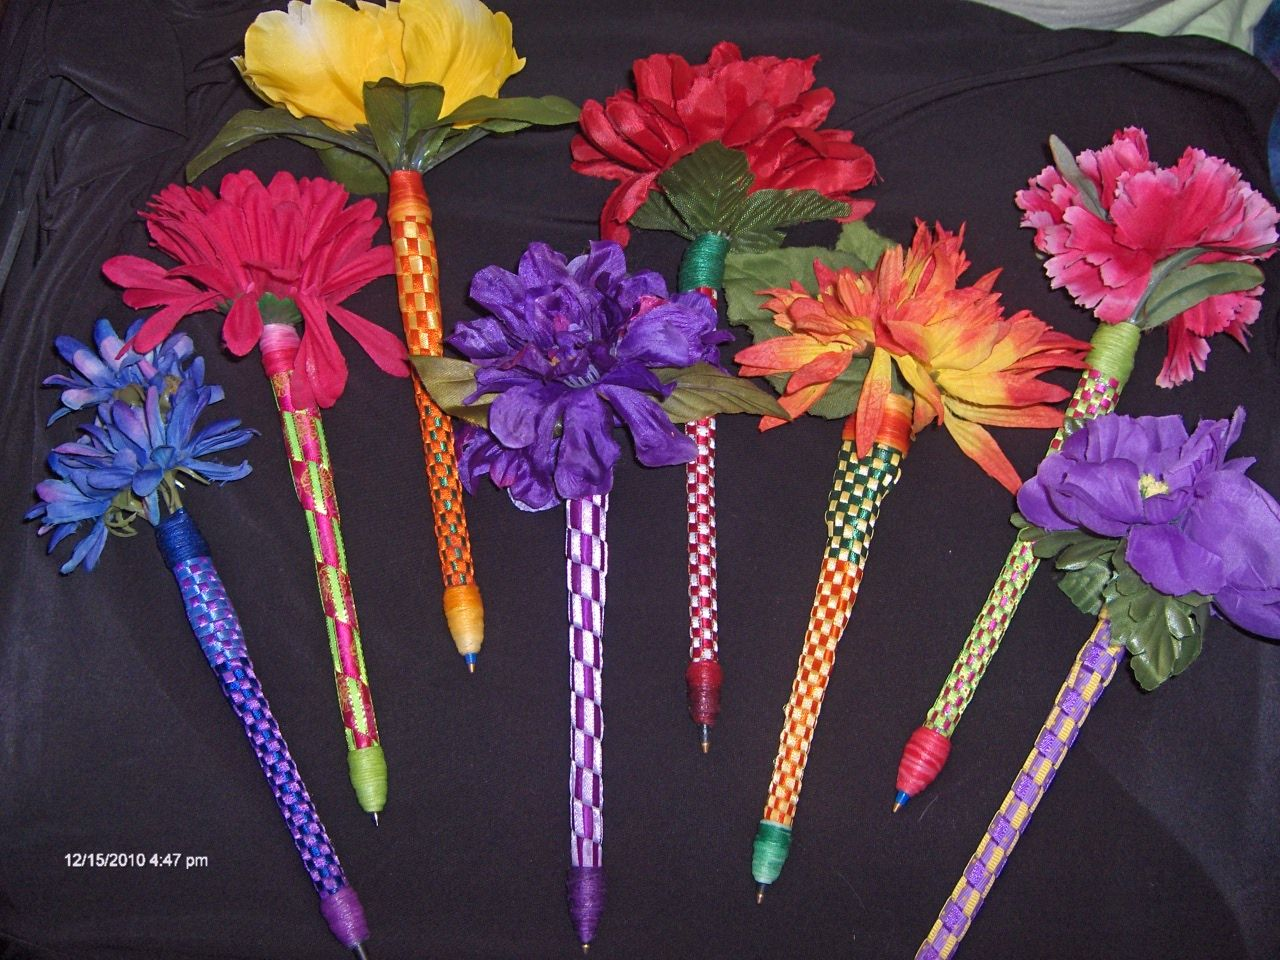 Floral Ribbon Pens I Make Often Sell Love Making These